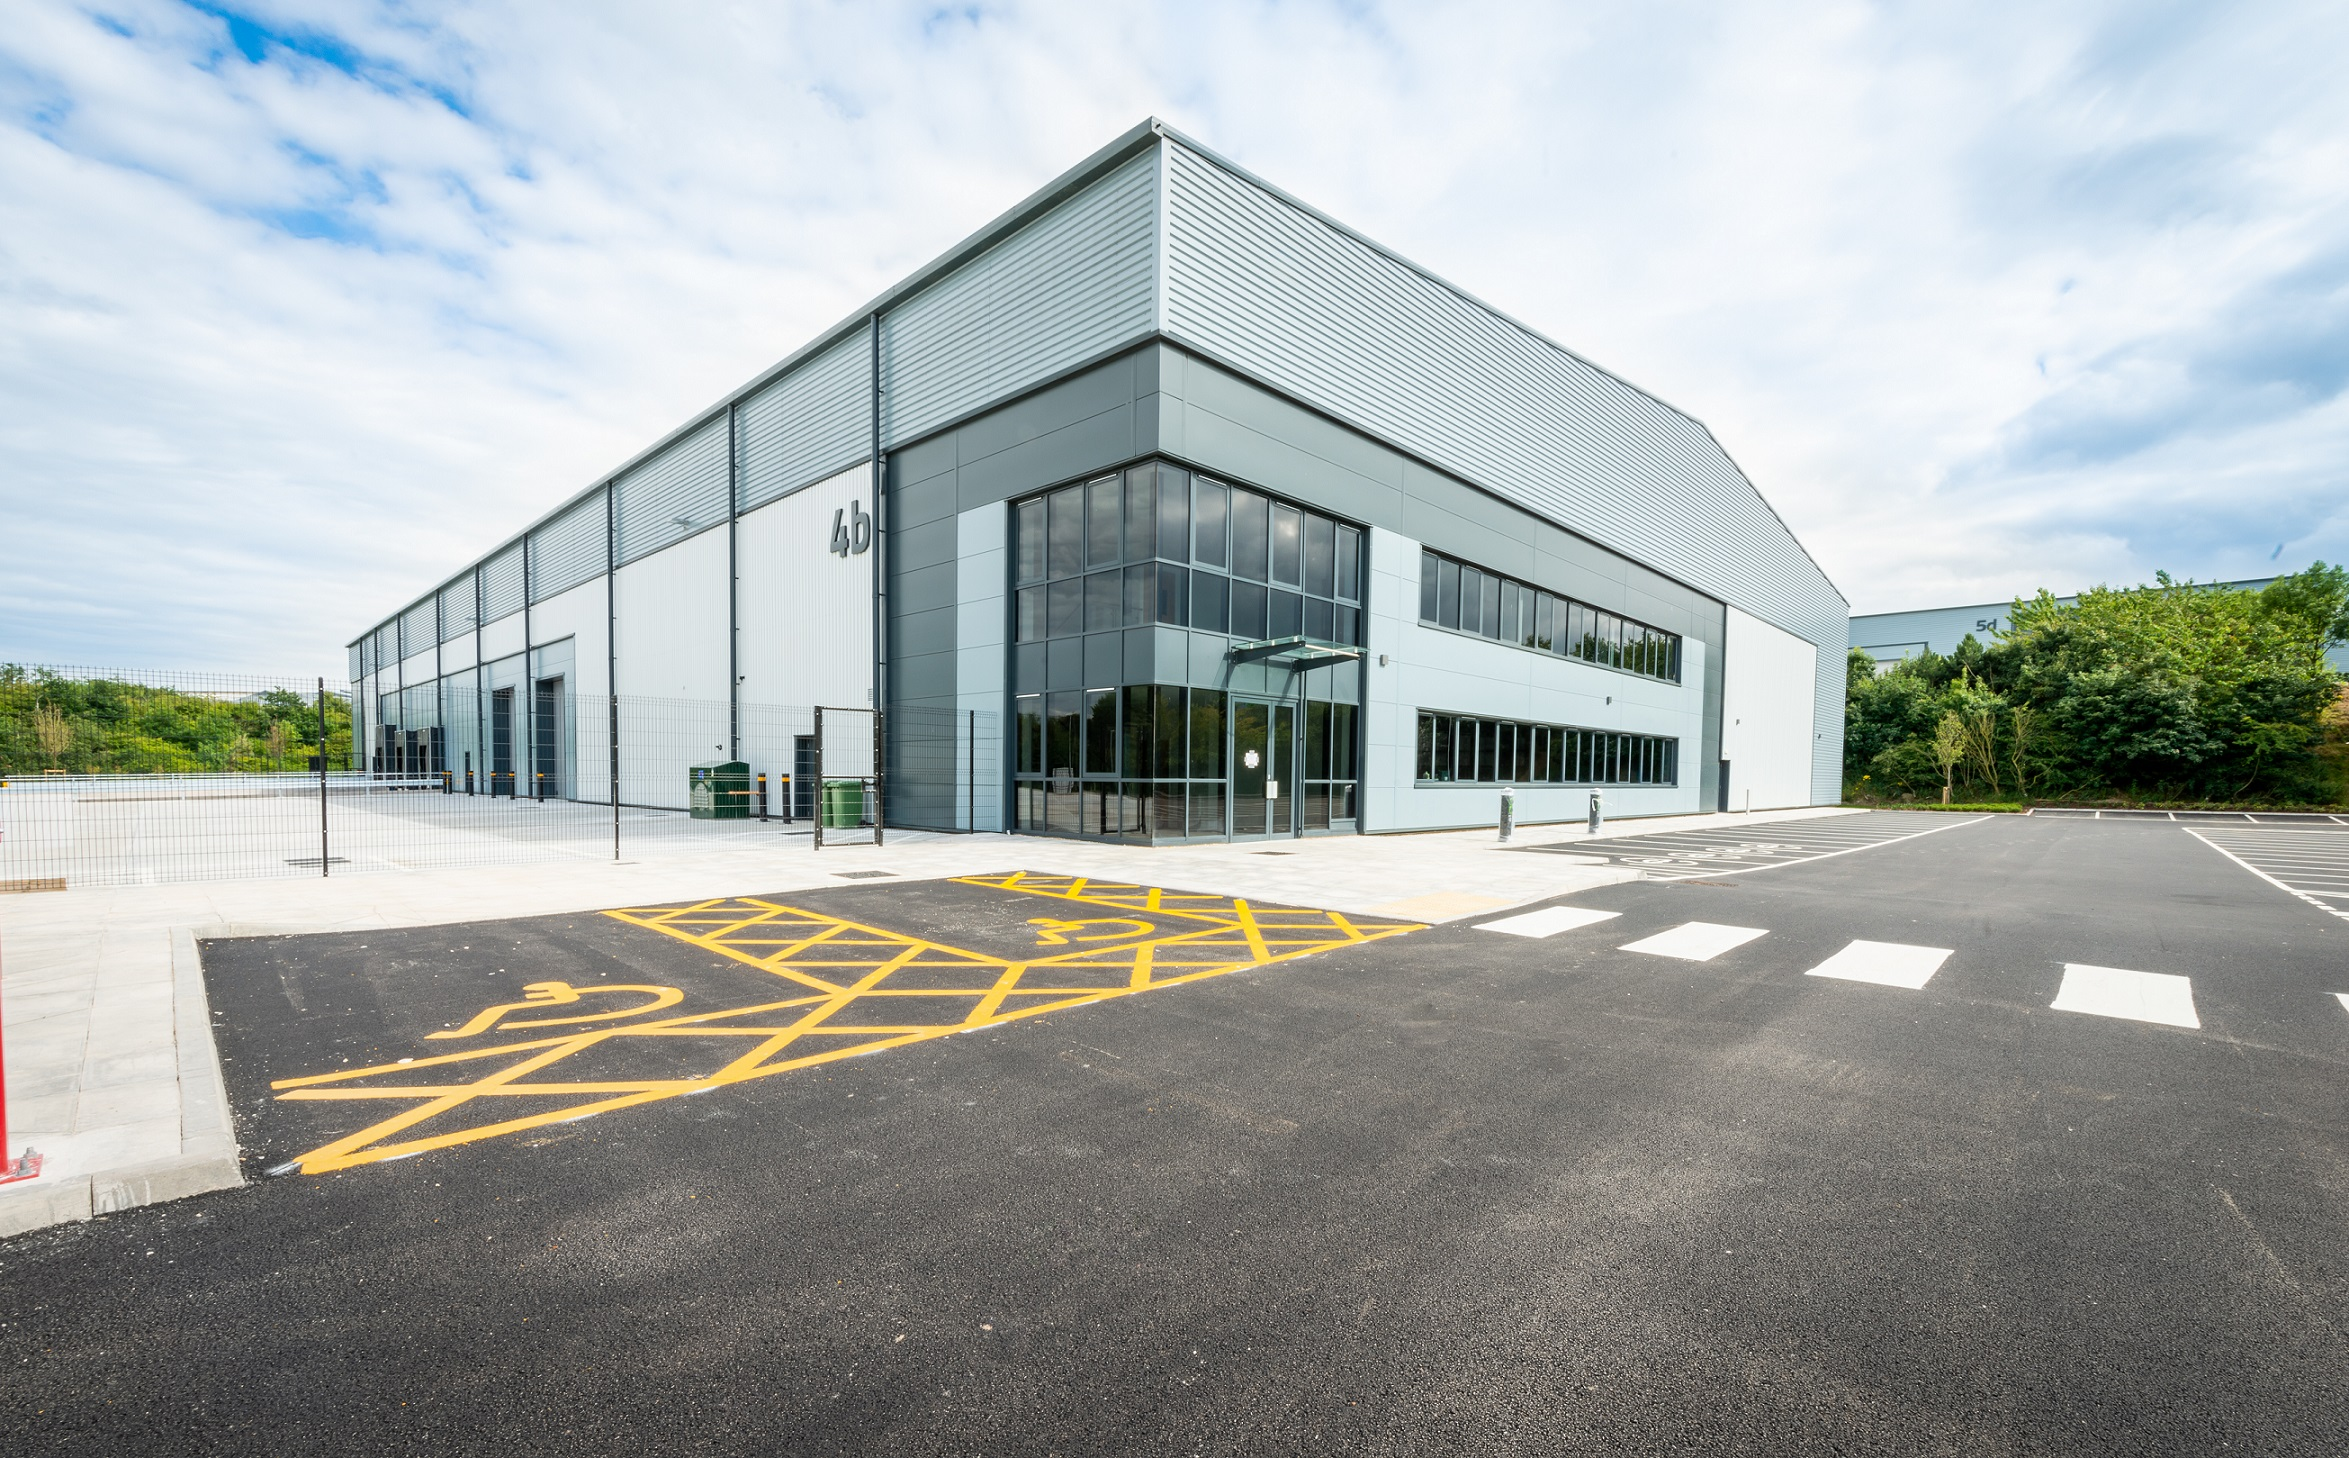 Regional contractor G F Tomlinson completes units at South Yorkshire business park